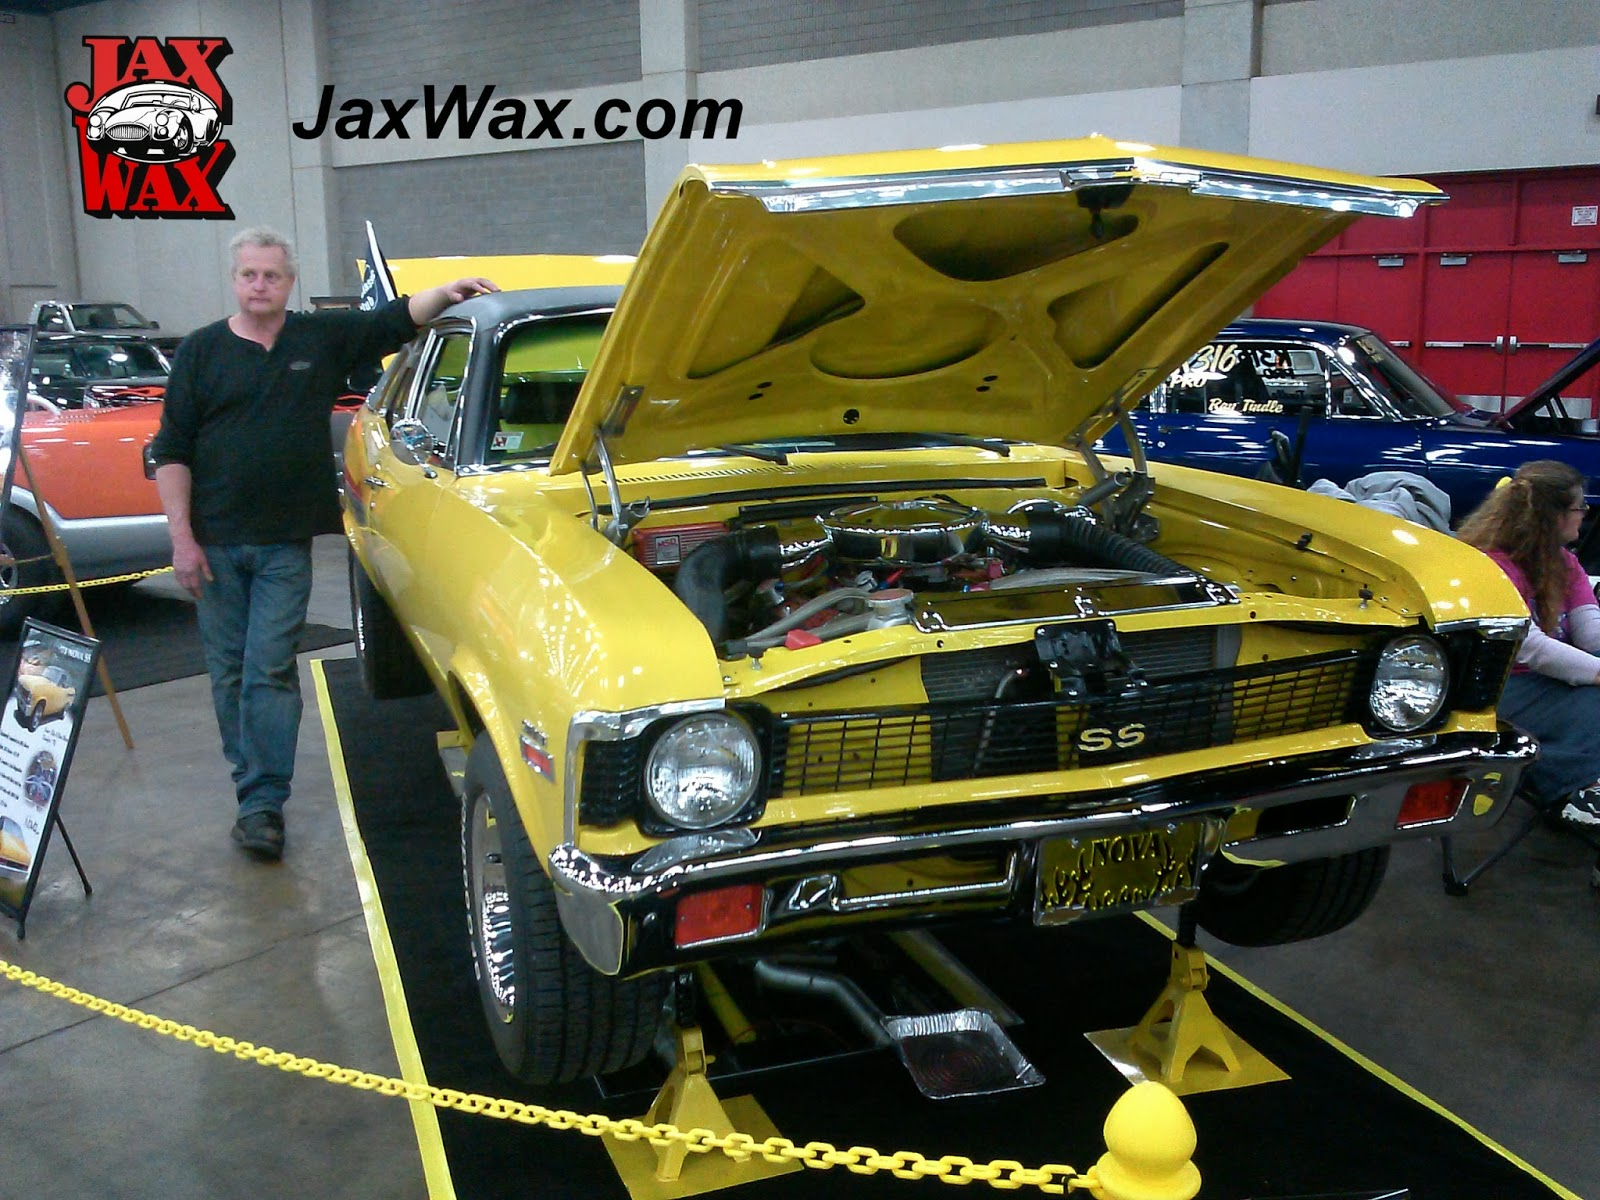 1971 Chevy Nova SS Carl Casper Auto Show Jax Wax Customer